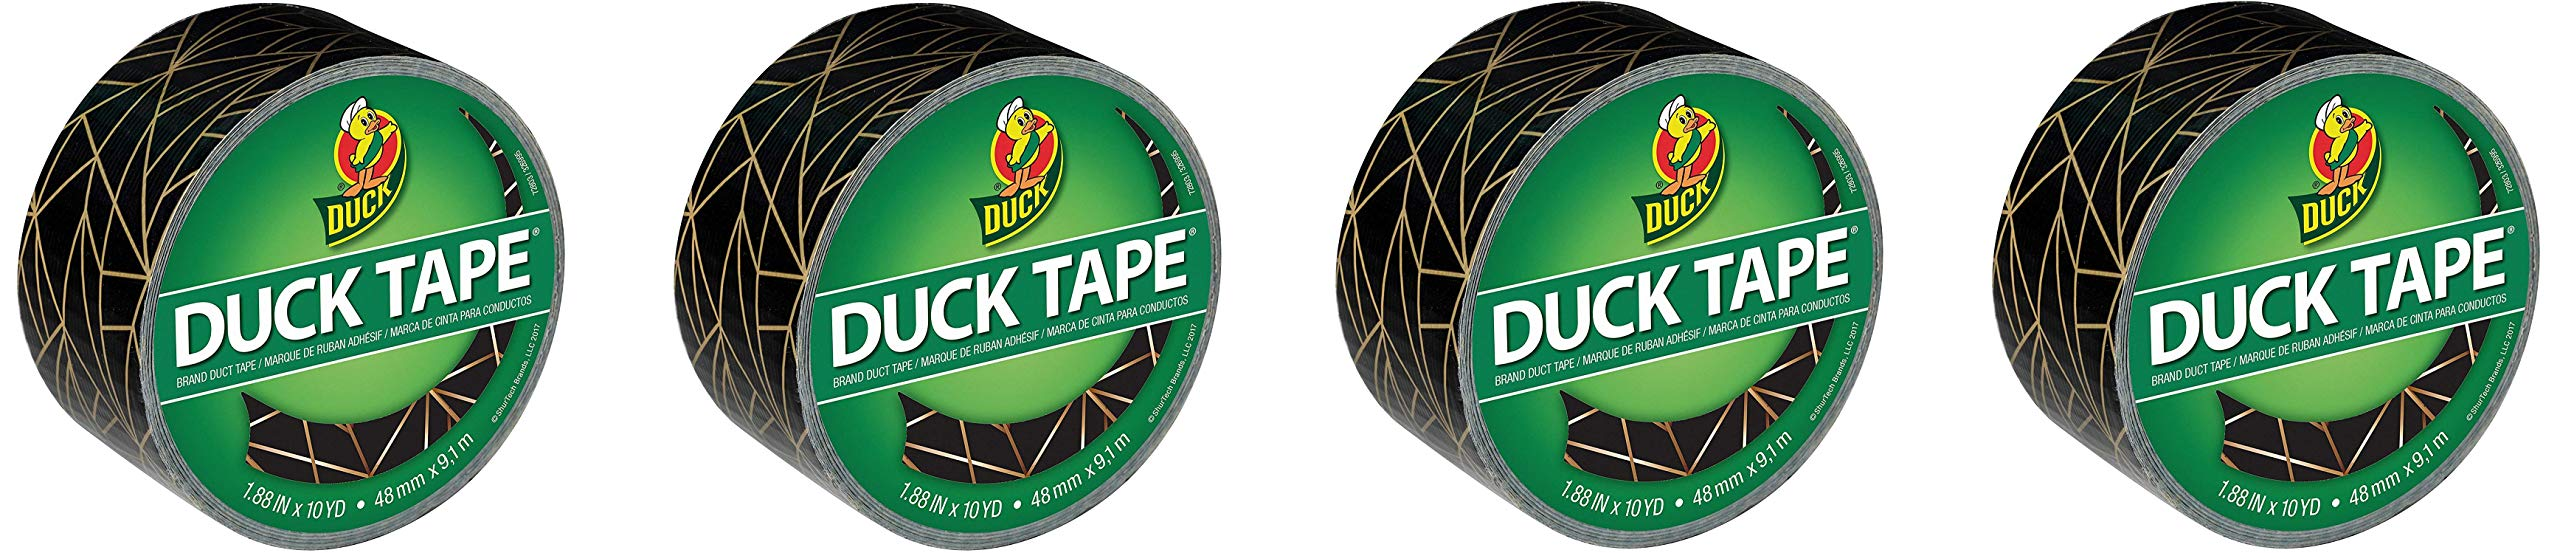 Duck Brand 241794 Printed Duct Tape, 1.88 in. x 10 yds, Gold Geometric (Fоur Paсk)